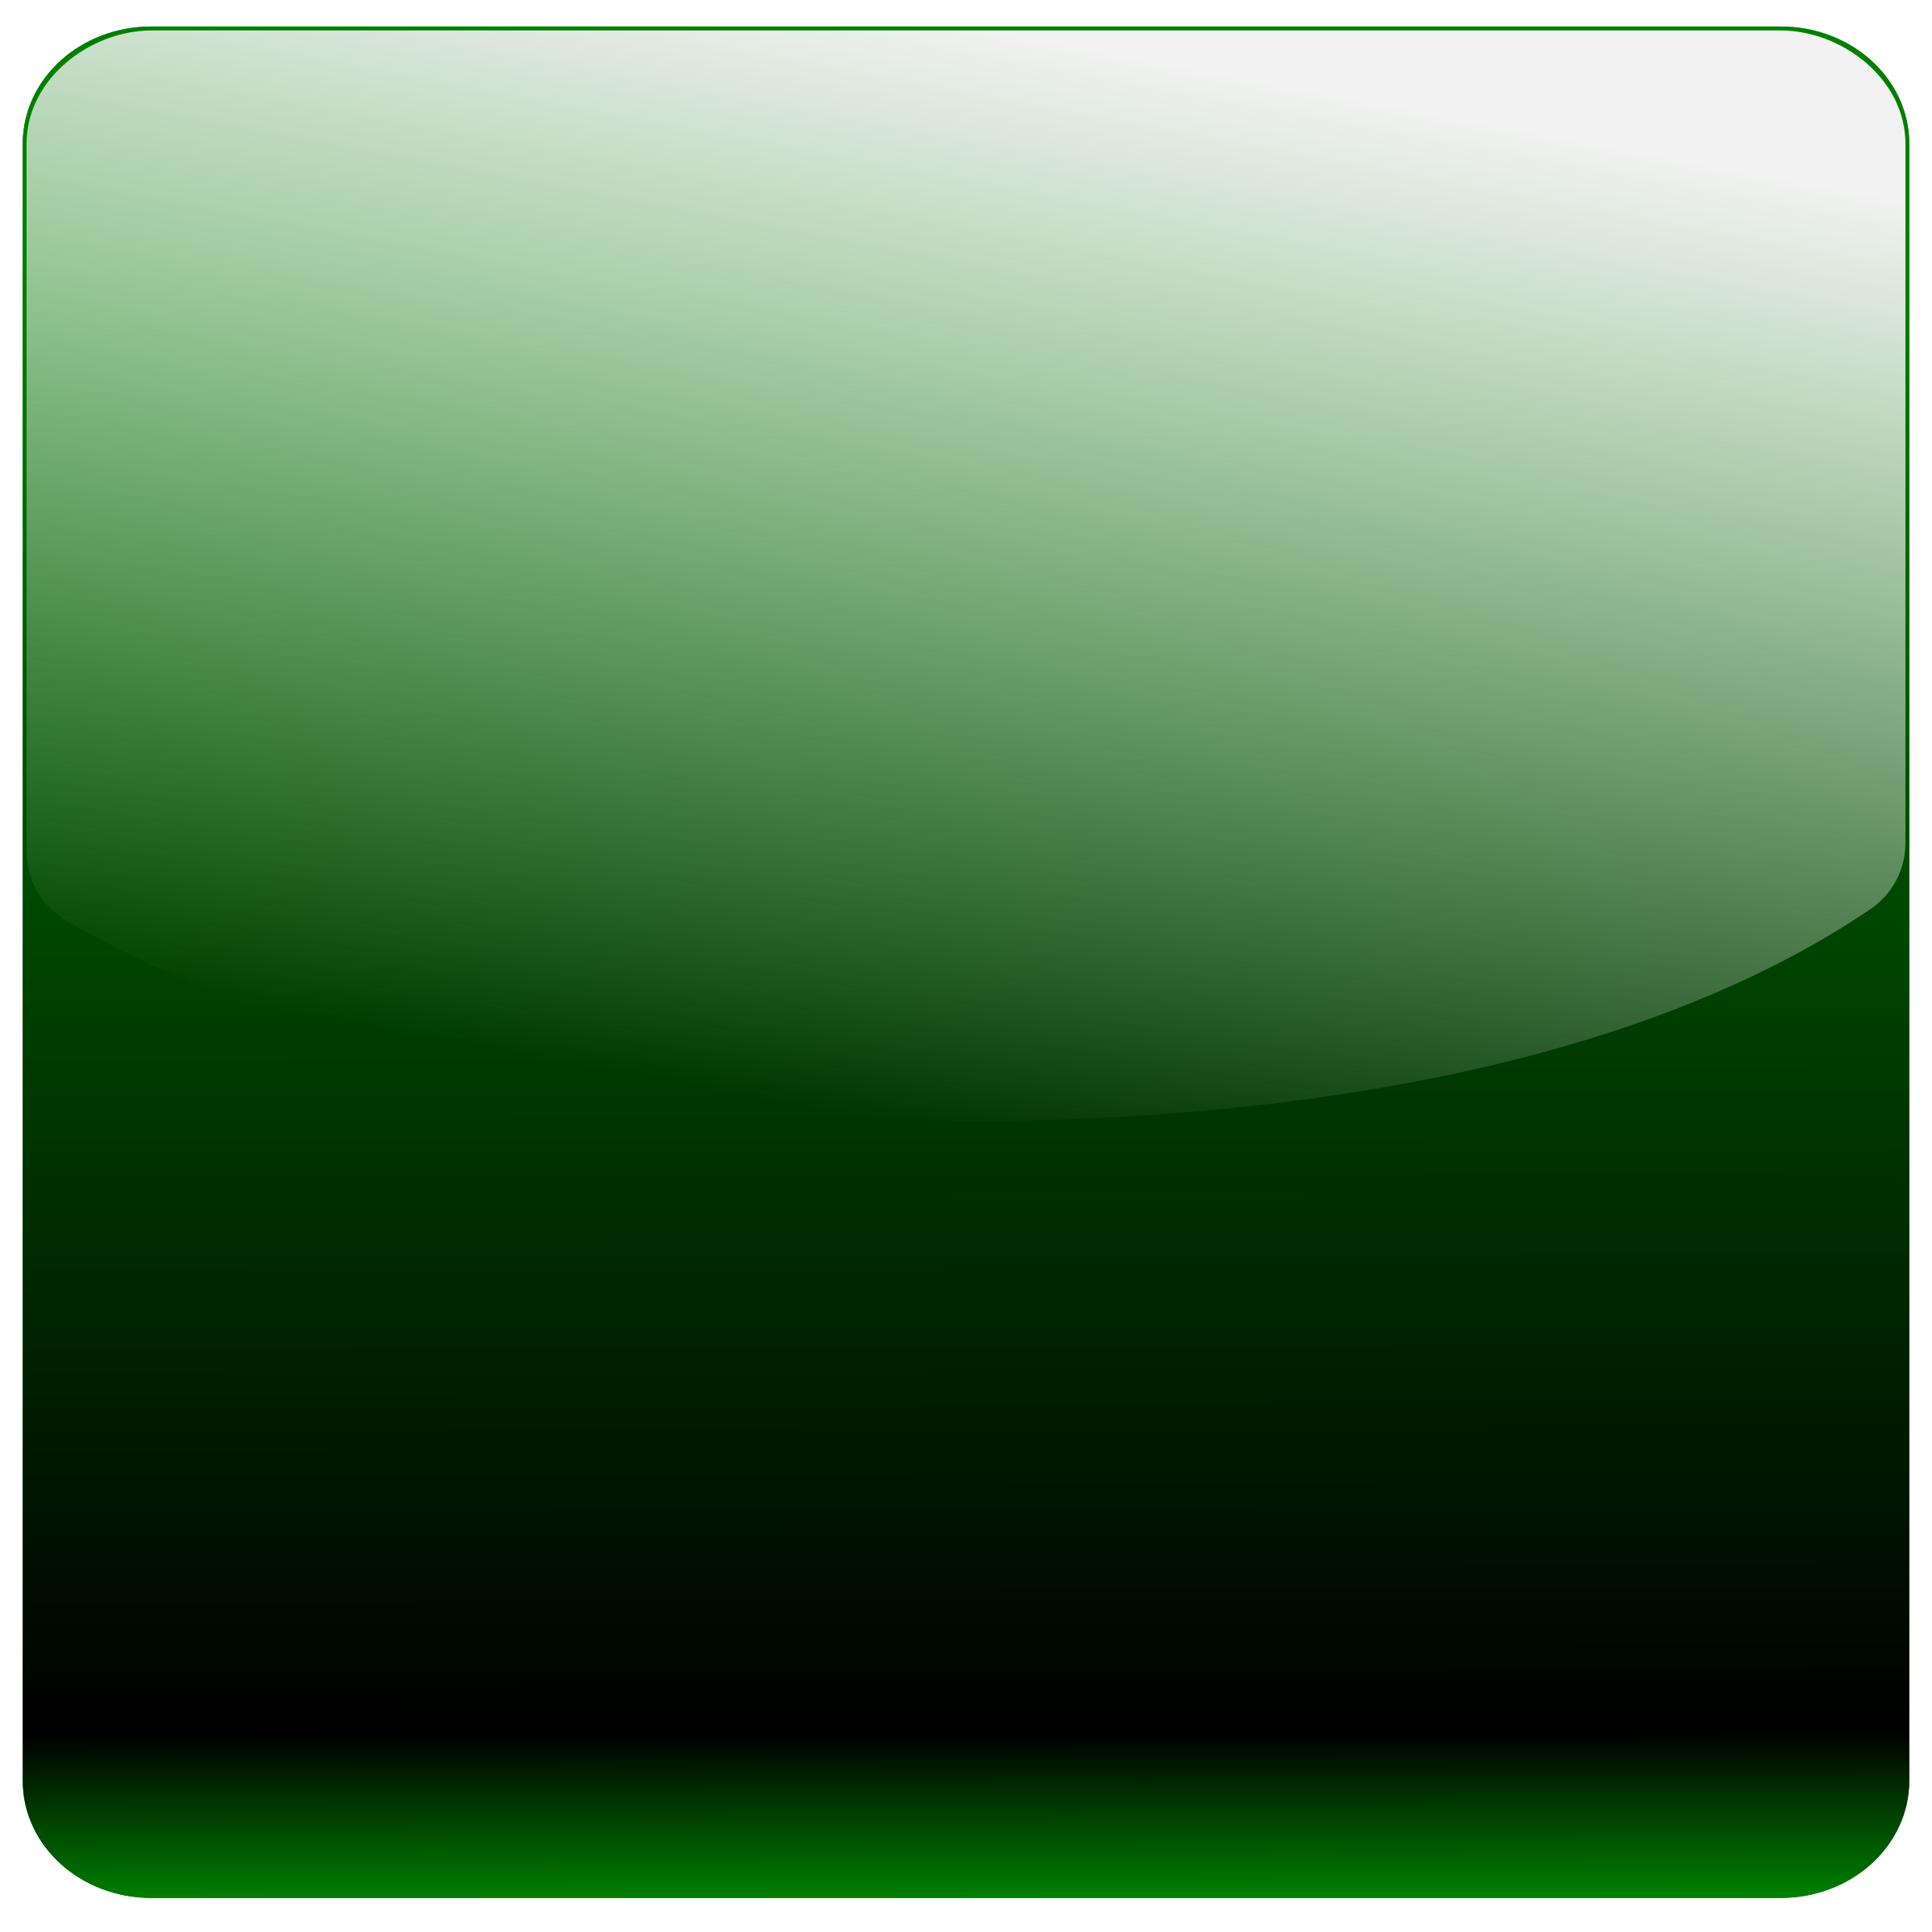 Icon Png Square Clipart - green square...